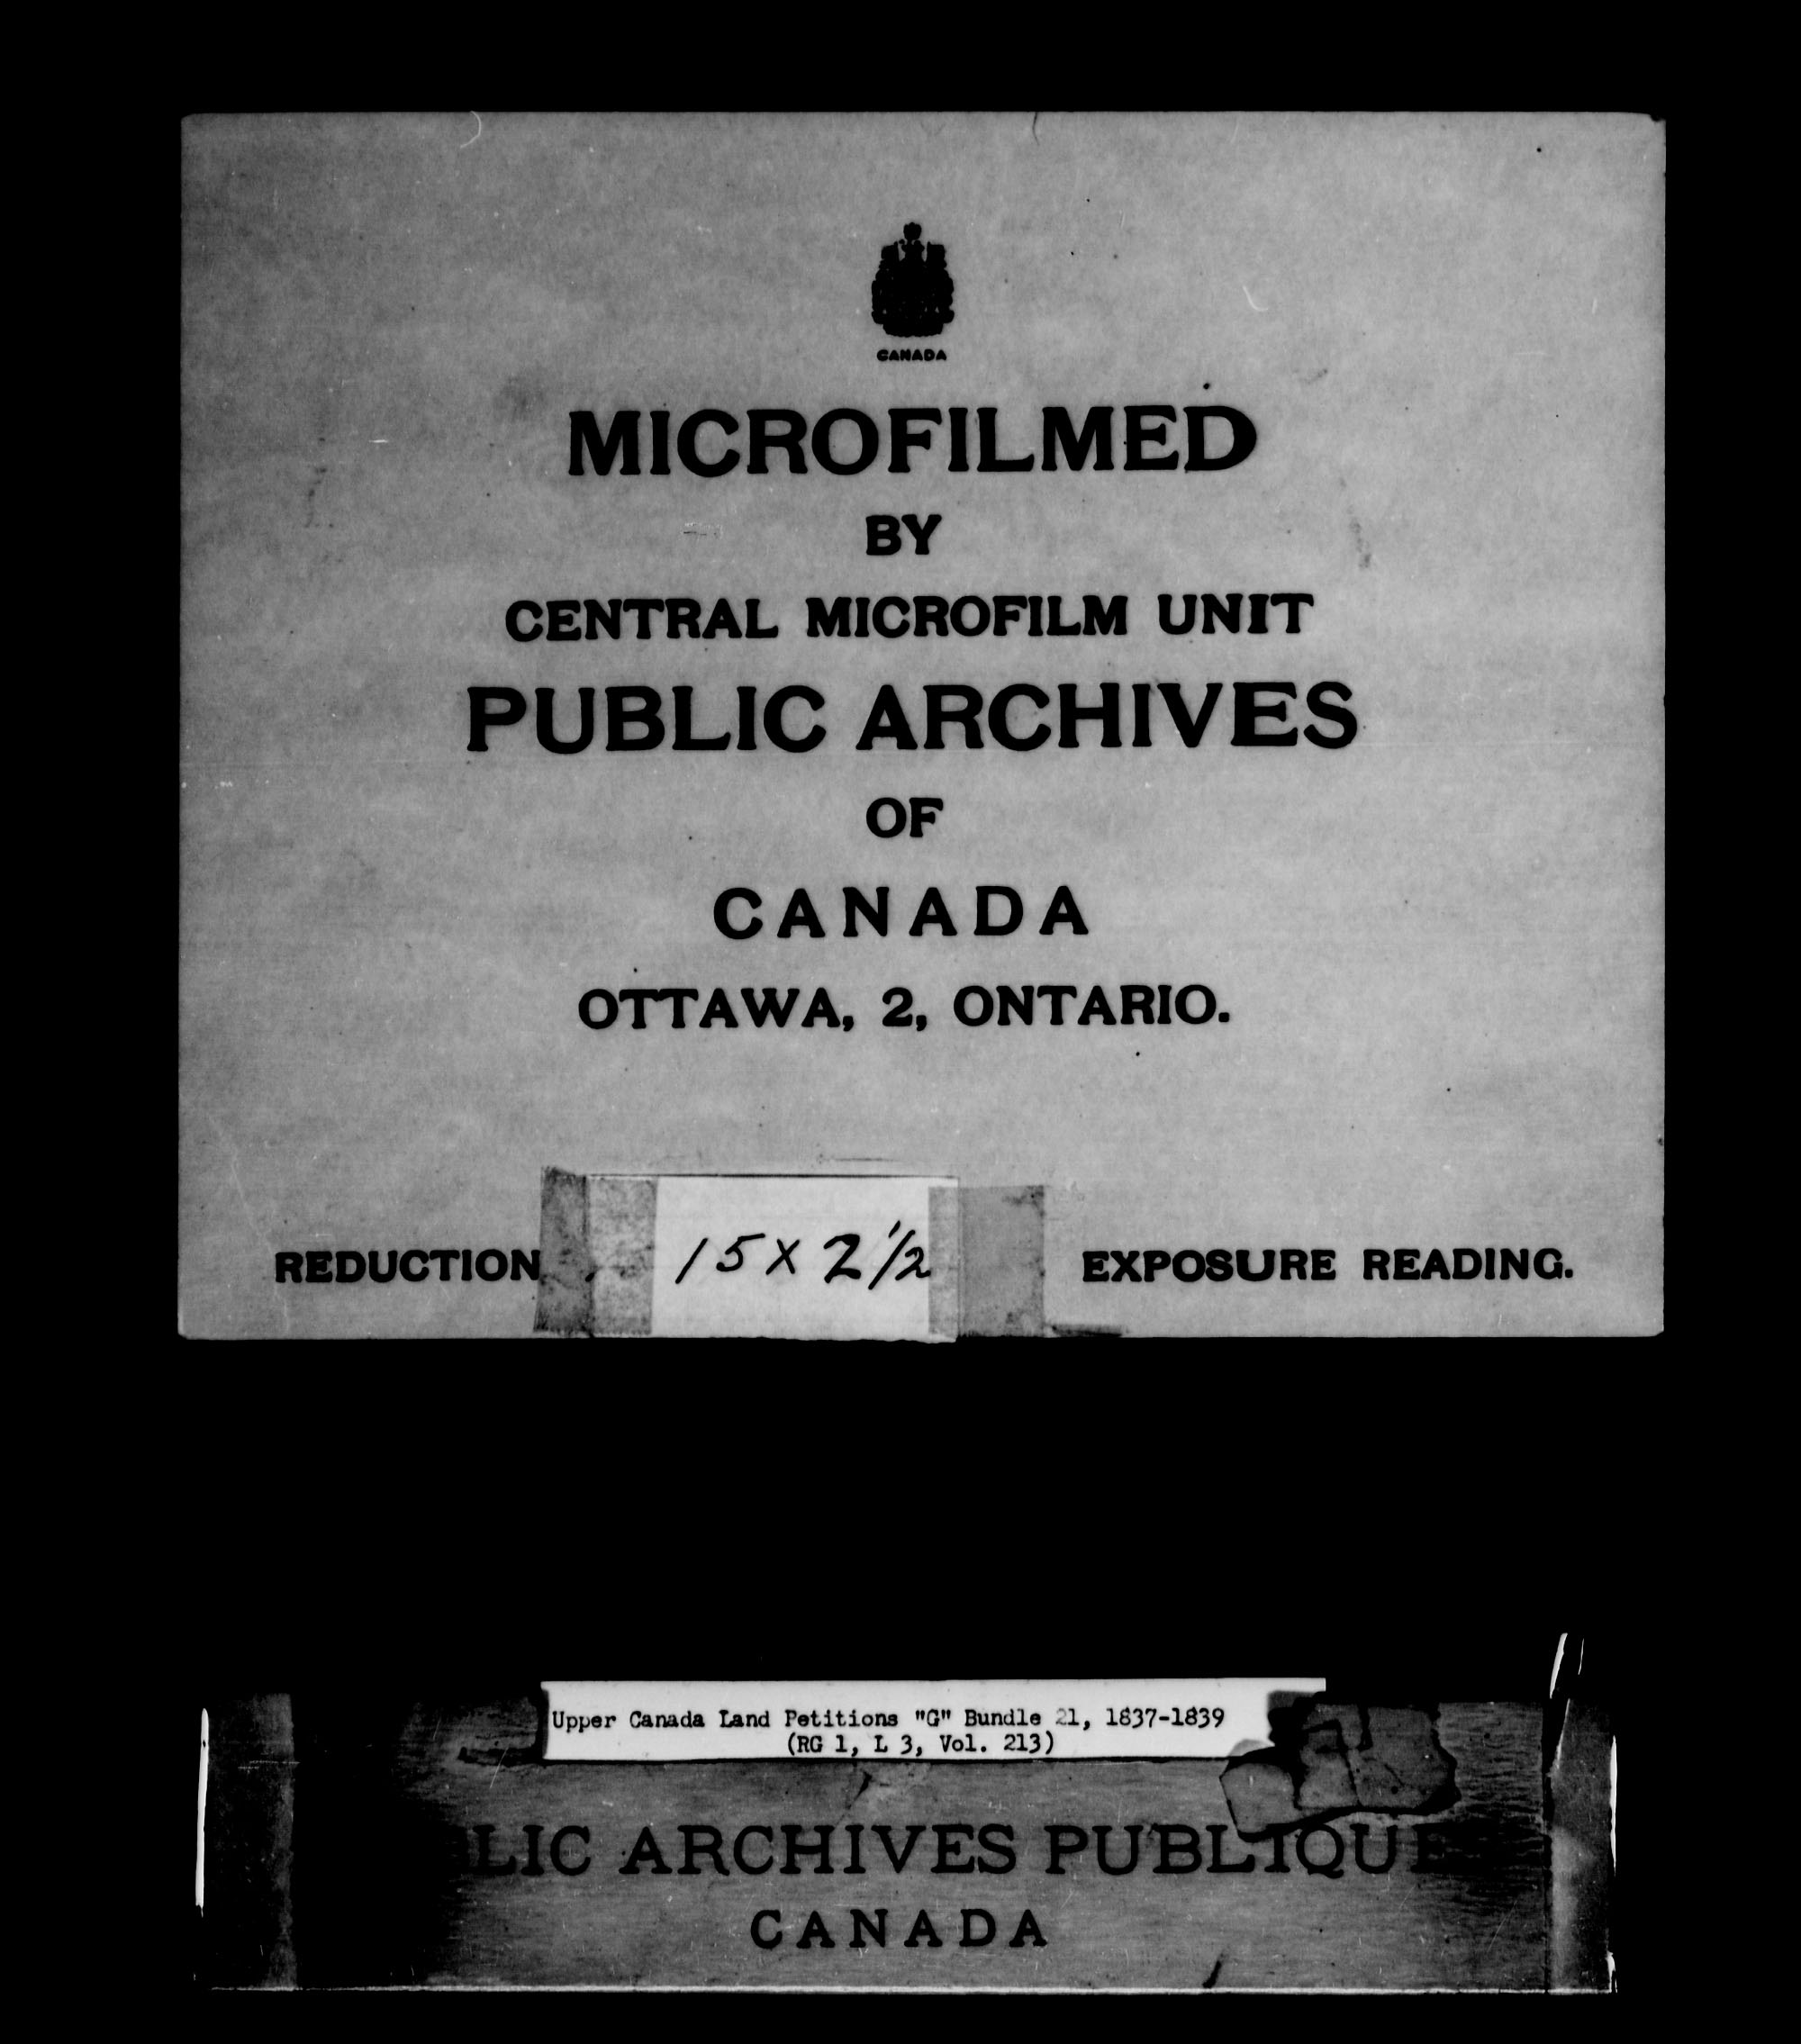 Title: Upper Canada Land Petitions (1763-1865) - Mikan Number: 205131 - Microform: c-2036